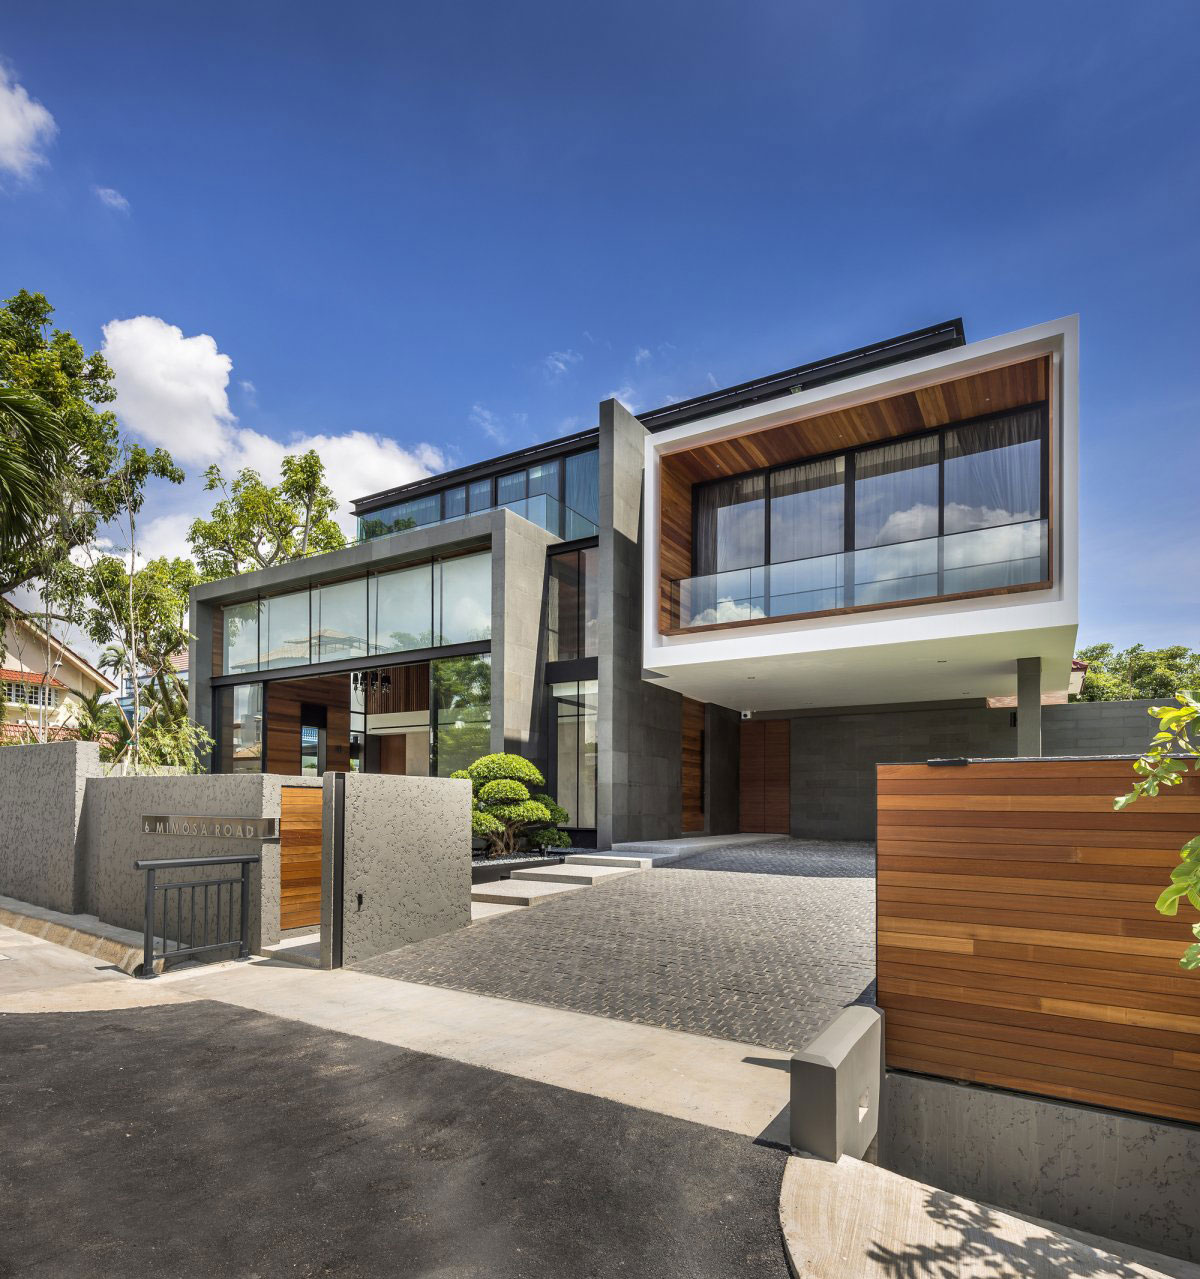 6 Mimosa Road by Park + Associates 01